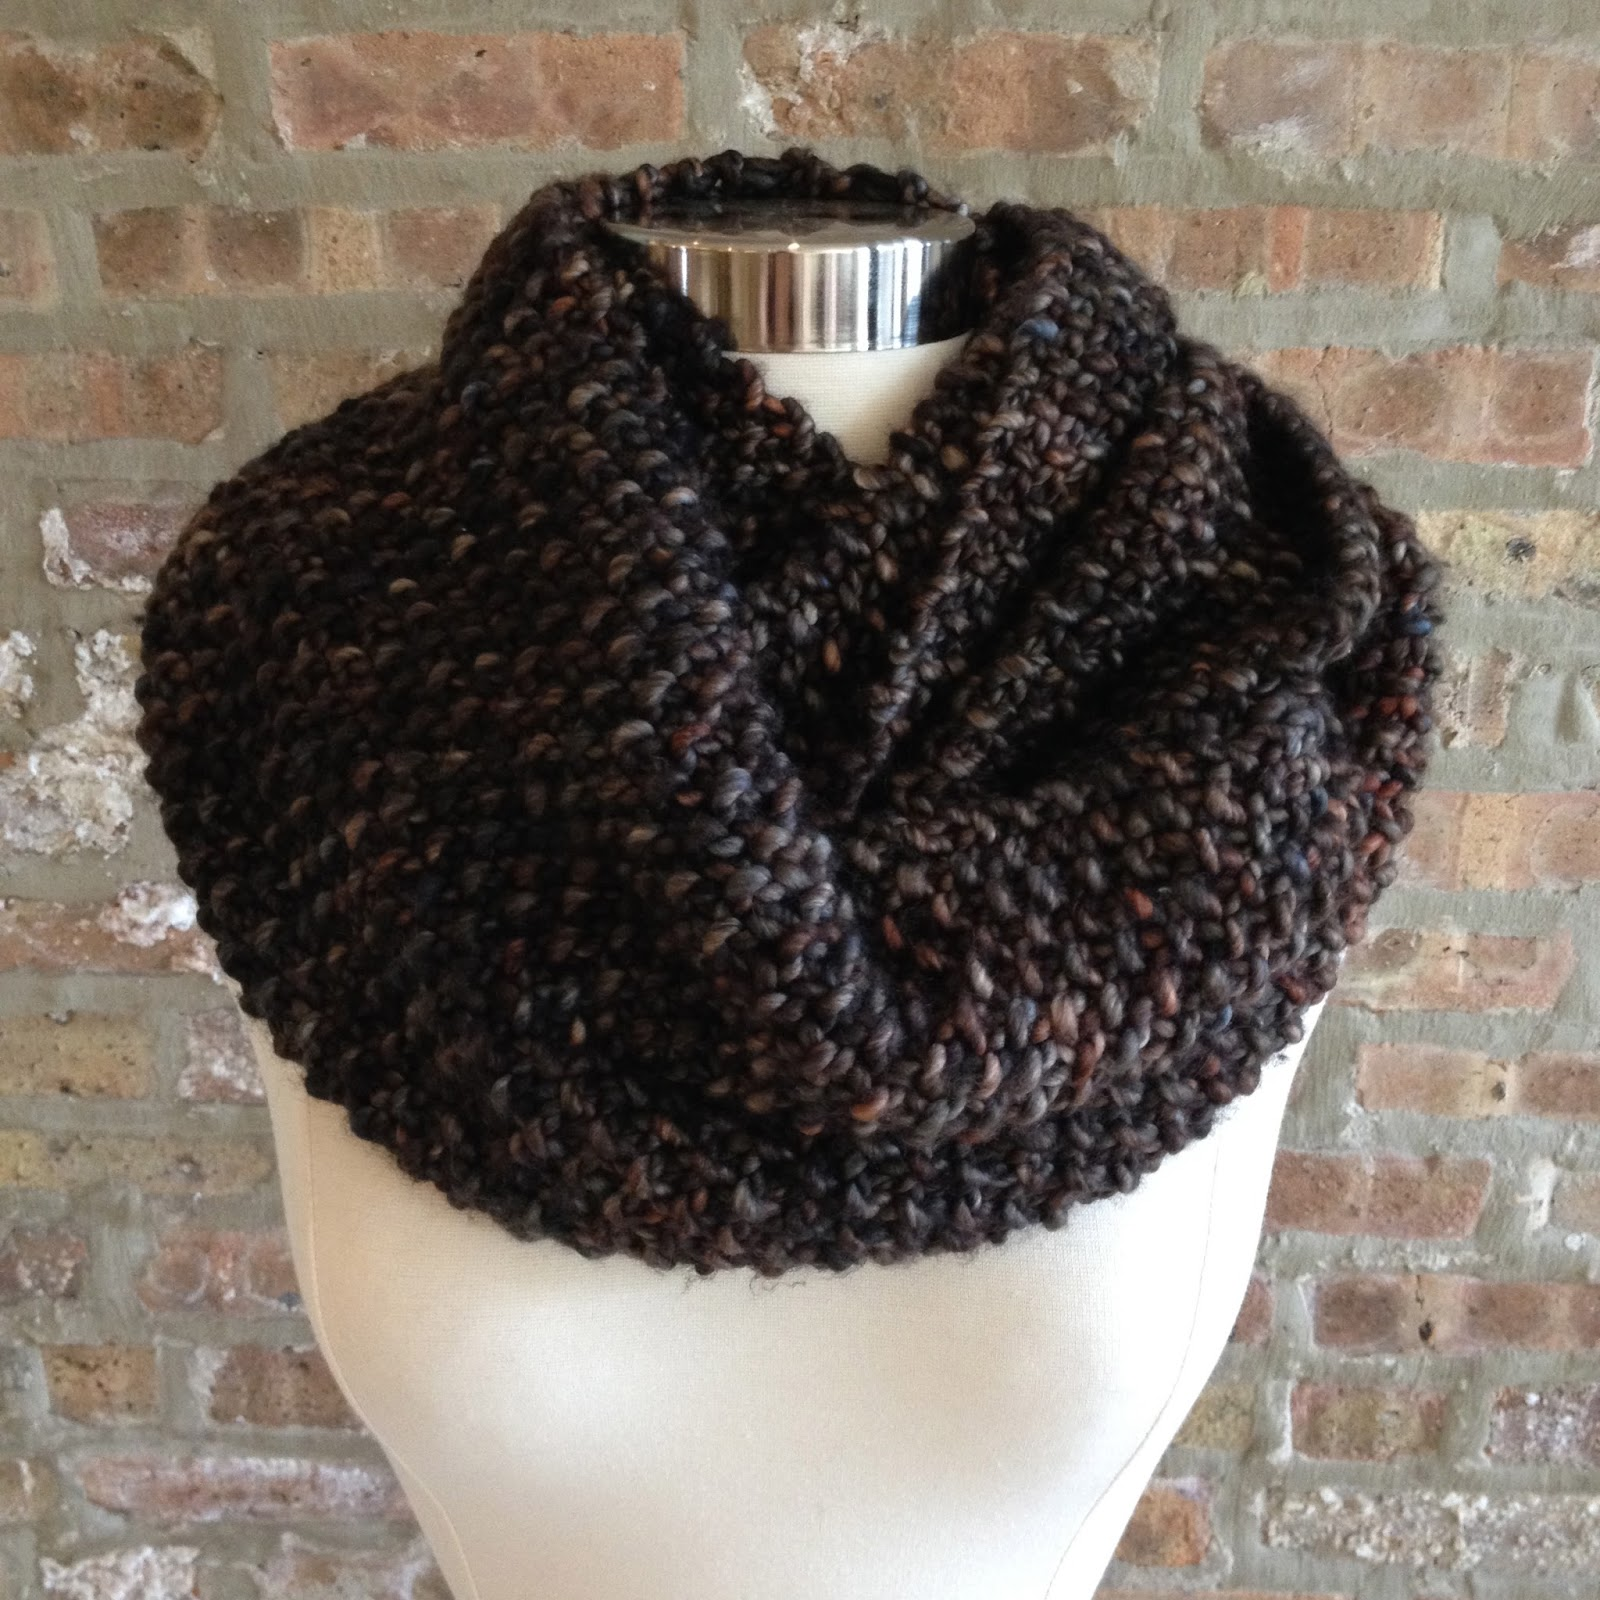 Clementine Knits: Clementine Knits Seed Stitch Infinity ...